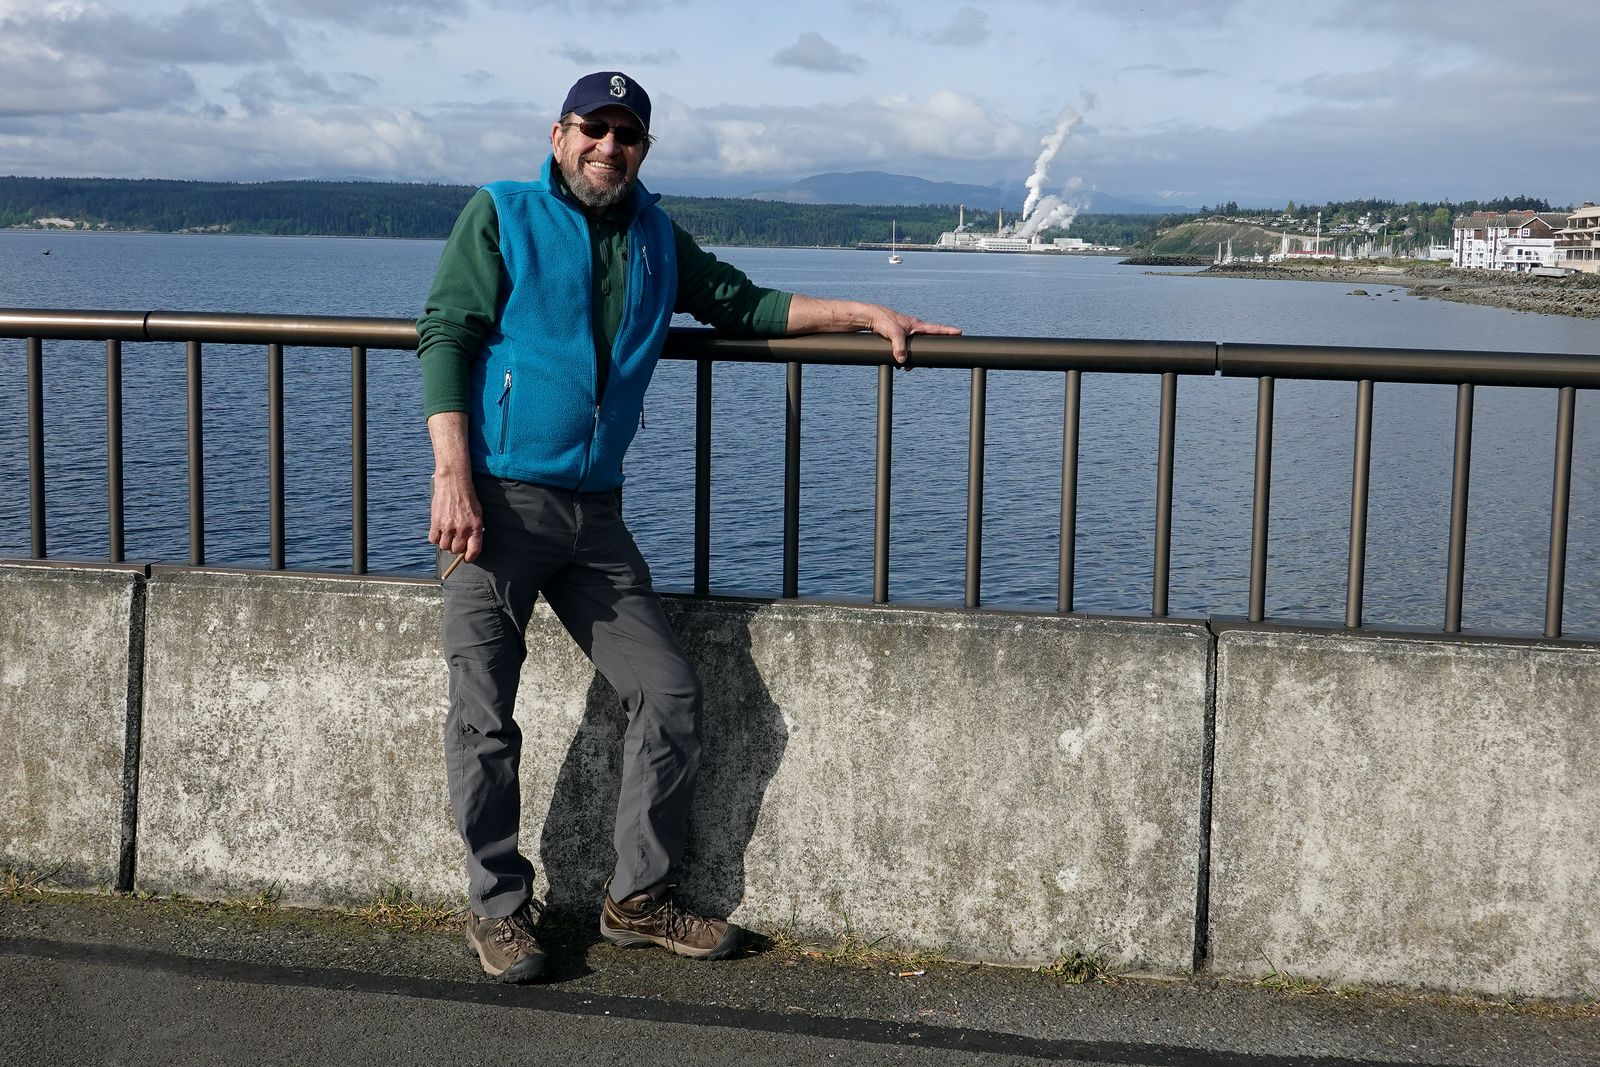 Our hike leader Denny waiting for the ferry